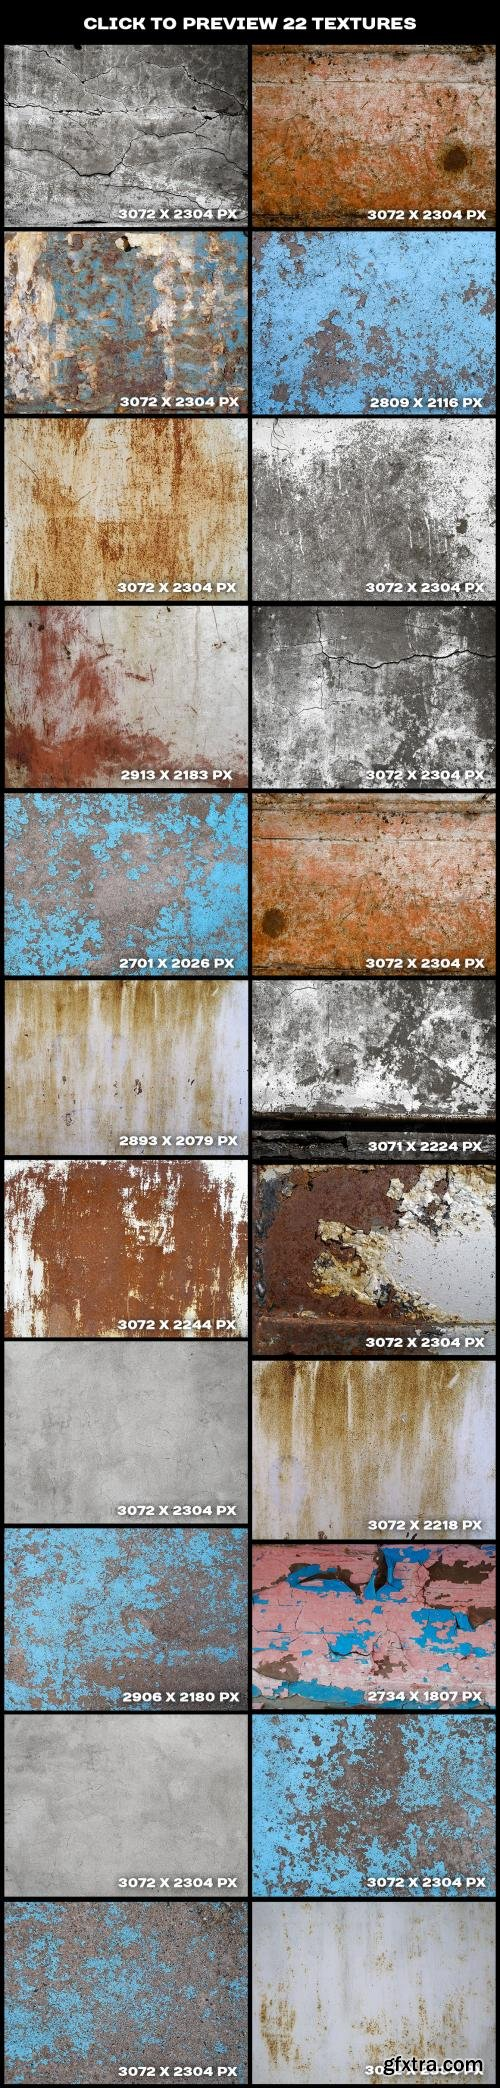 CreativeMarket Cracked paint and concrete textures 589744